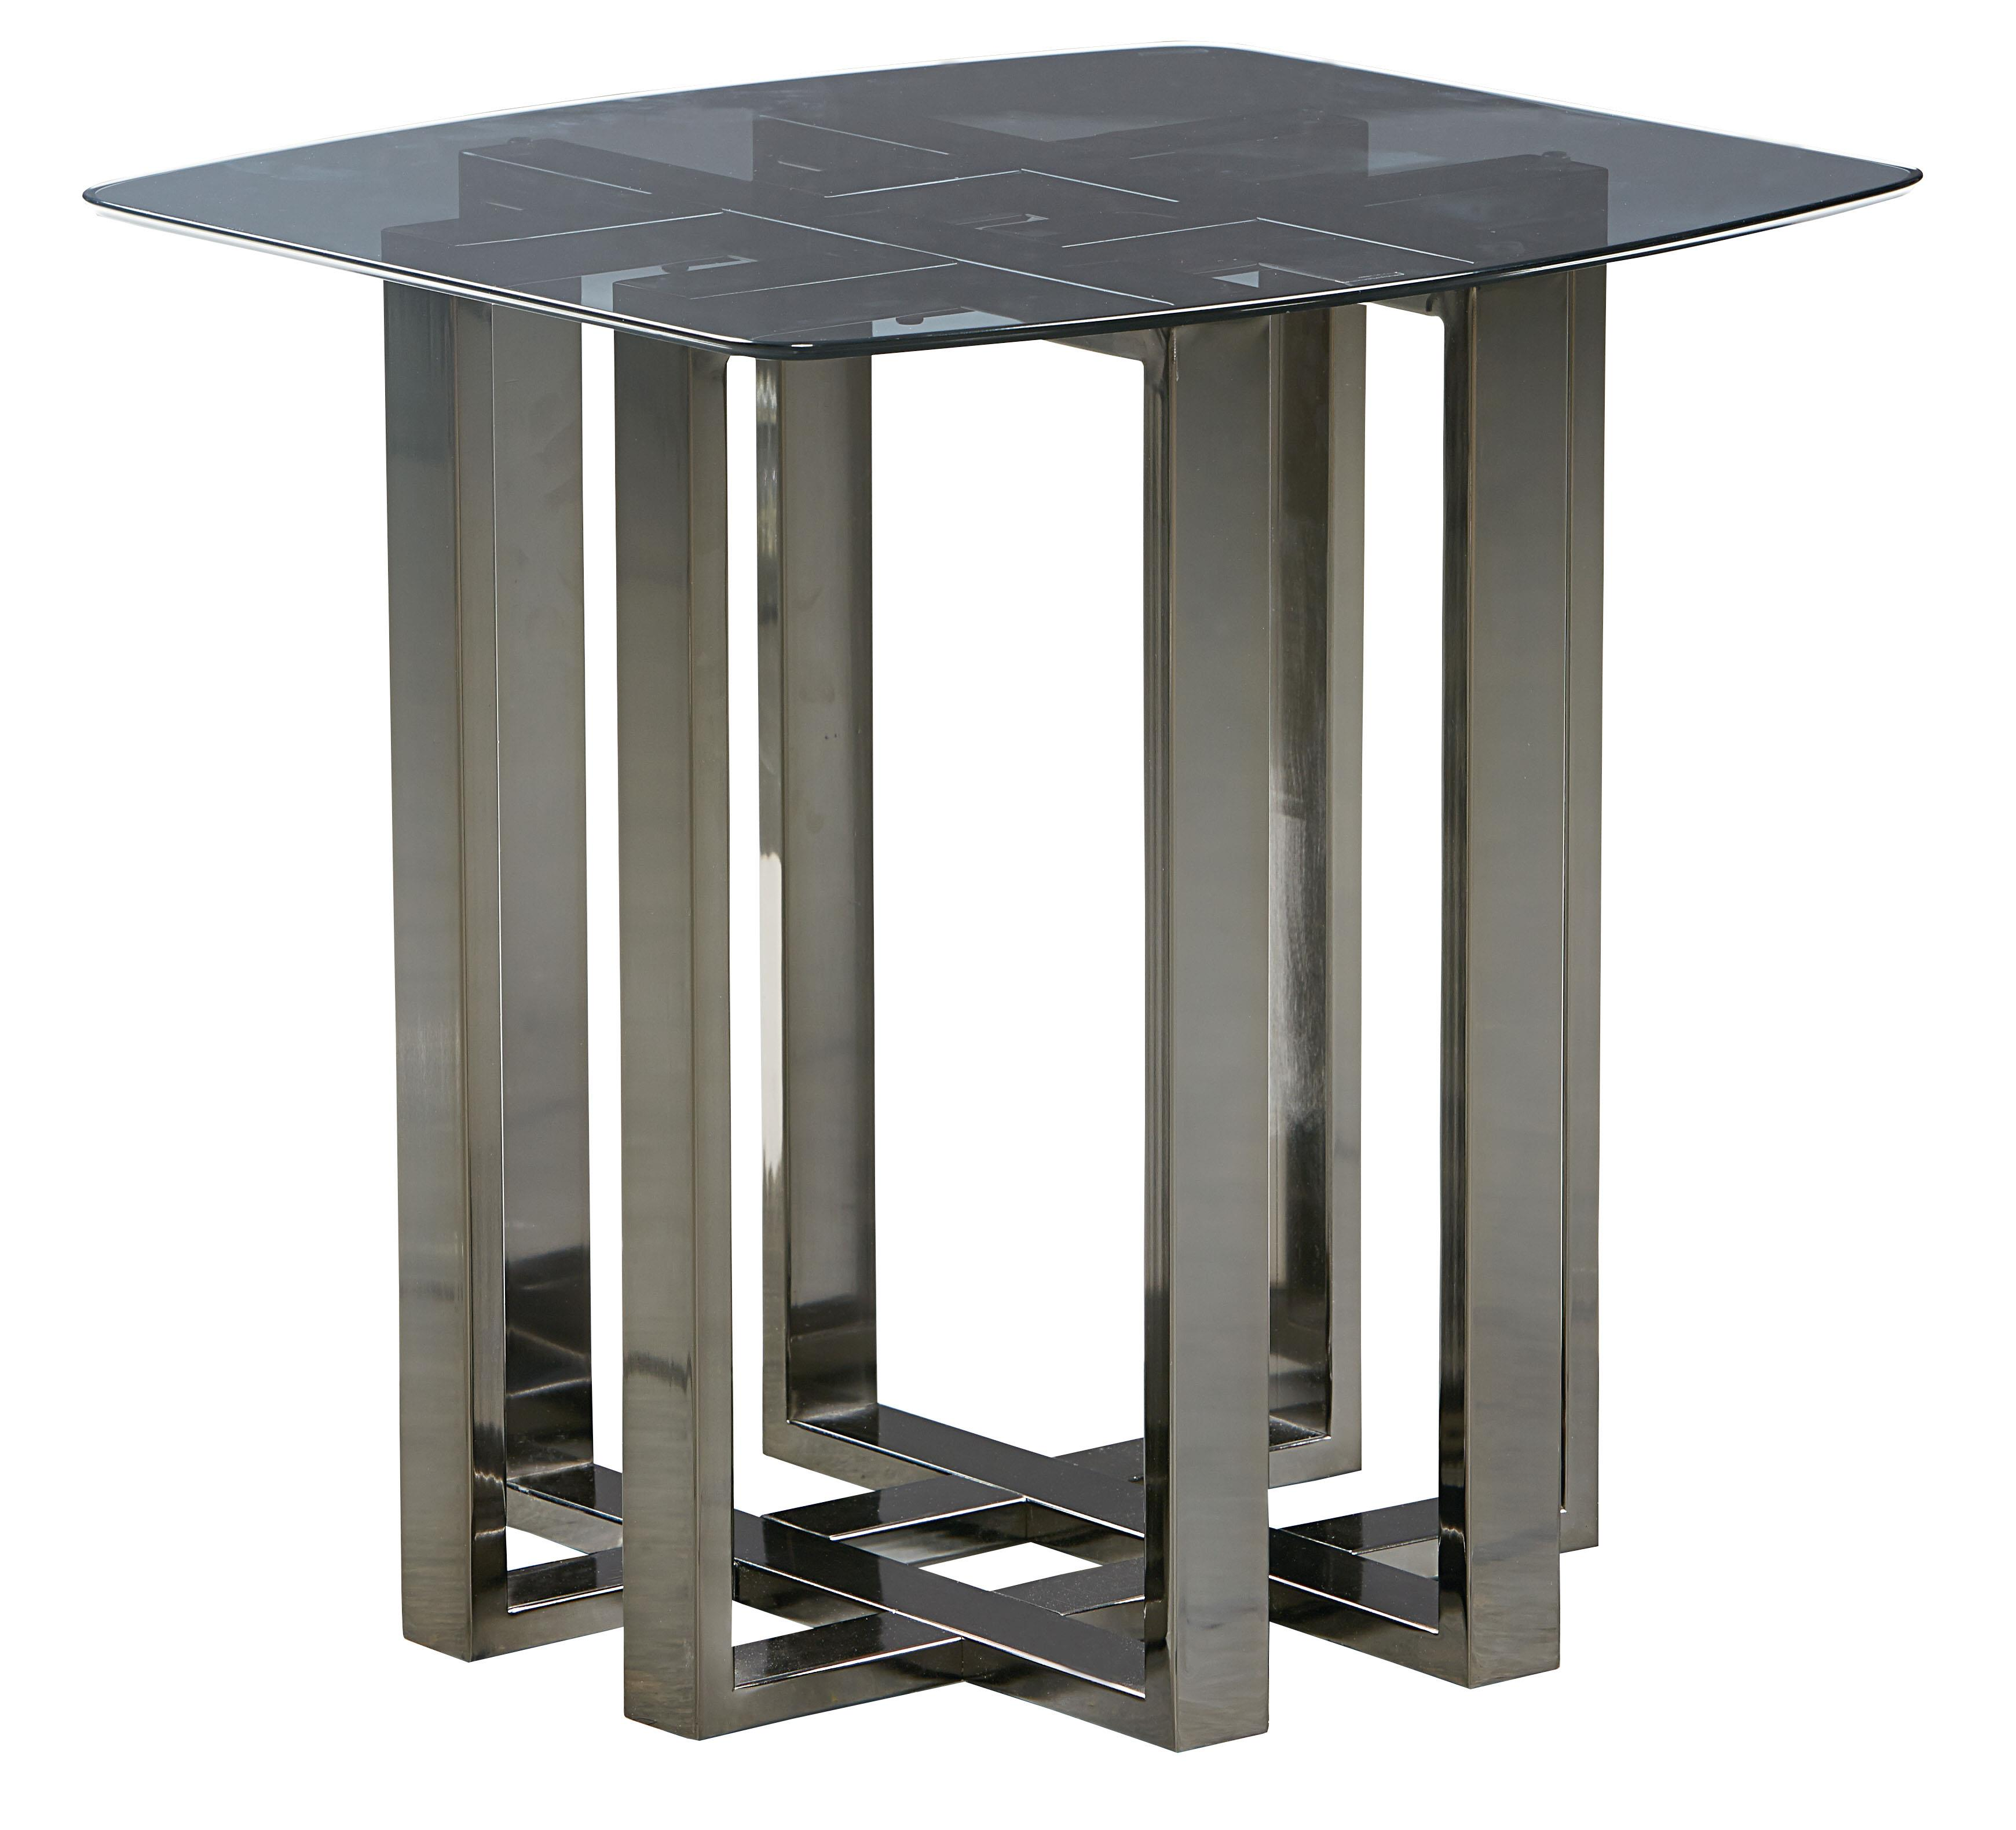 Standard Furniture Hashtag End Table - Item Number: 29202+1029202